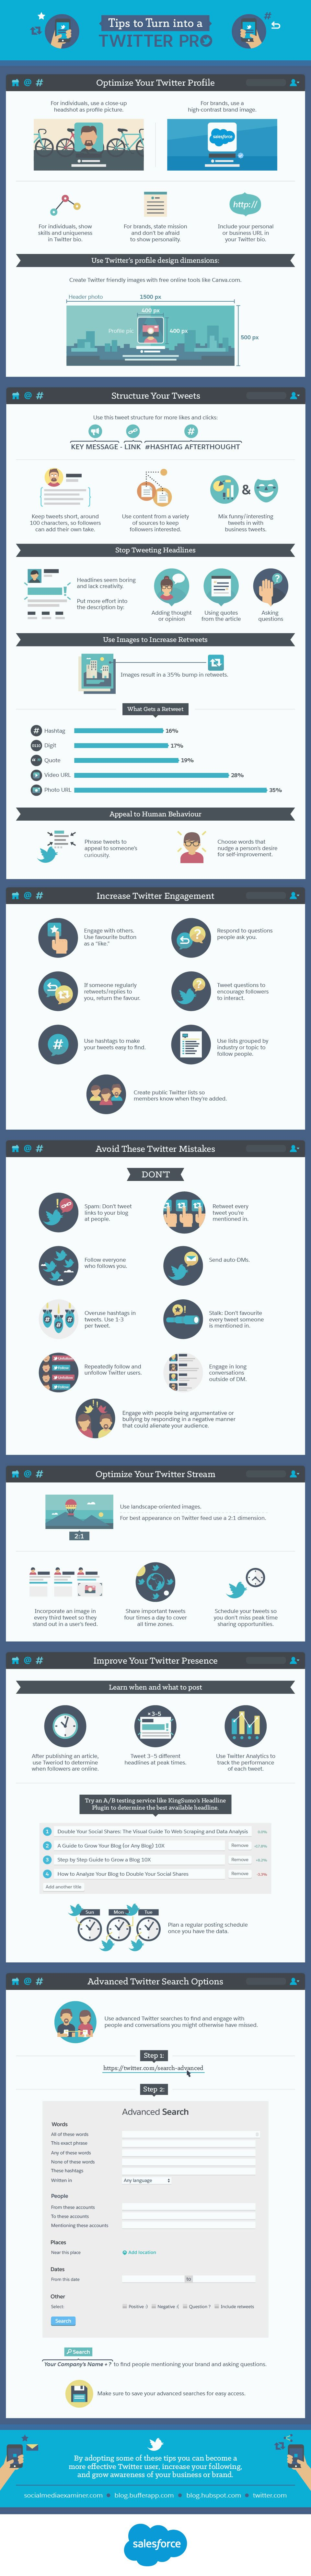 Tips to Turn Into a Twitter Pro